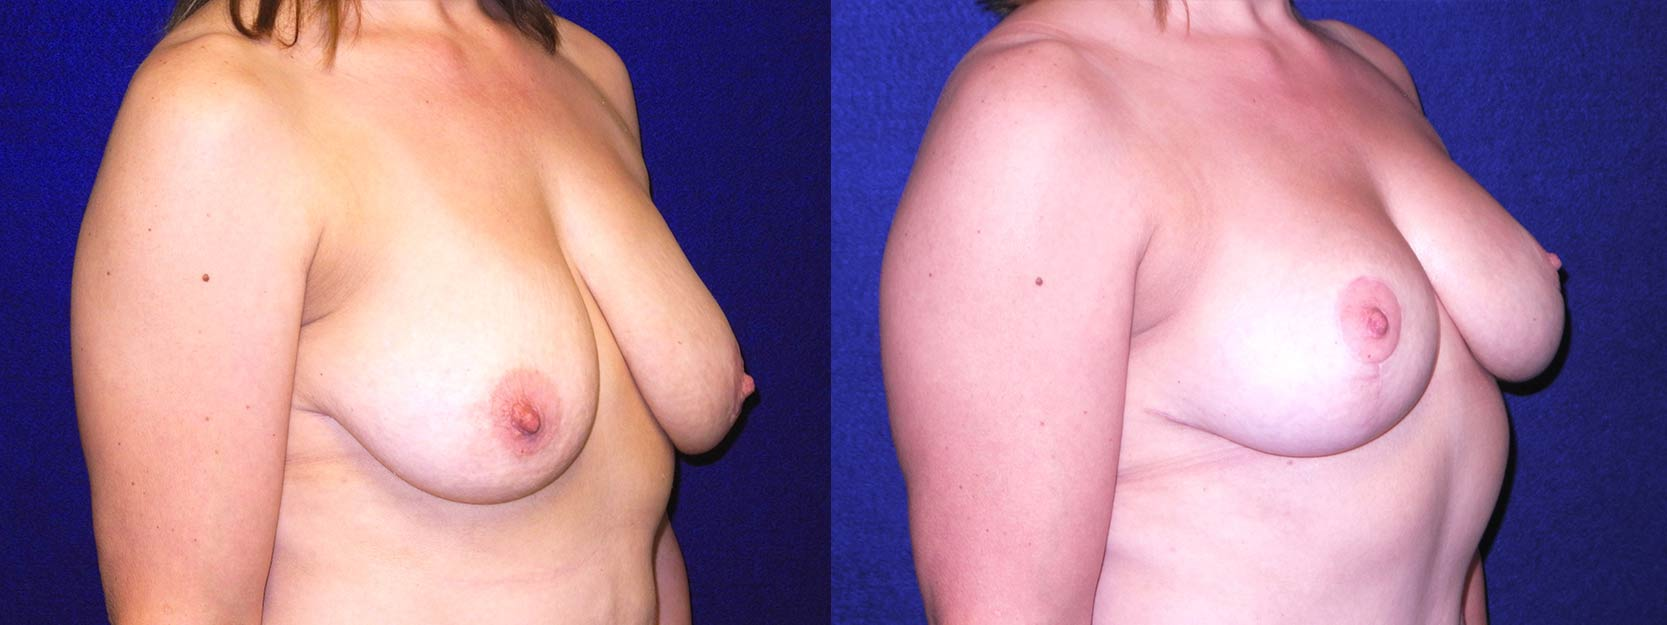 Right 3/4 View - Breast Lift After Pregnancy & Weight Loss